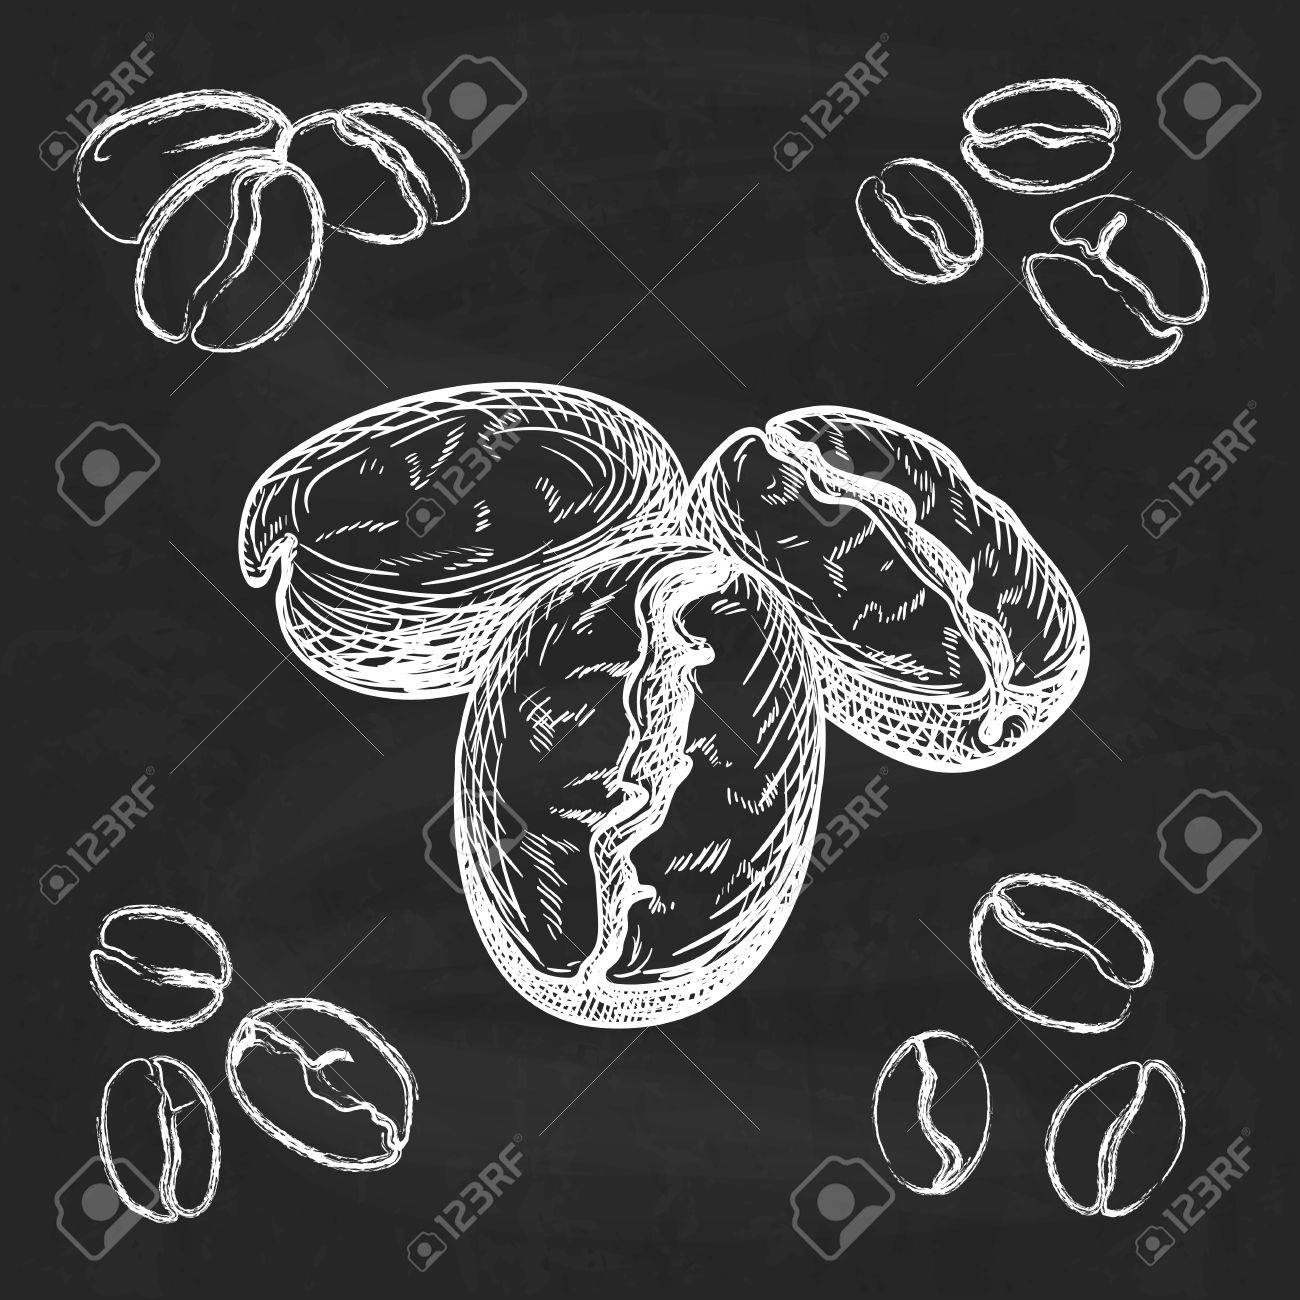 Silhouette hand drawn coffee beans on chalkboard background - 35124695